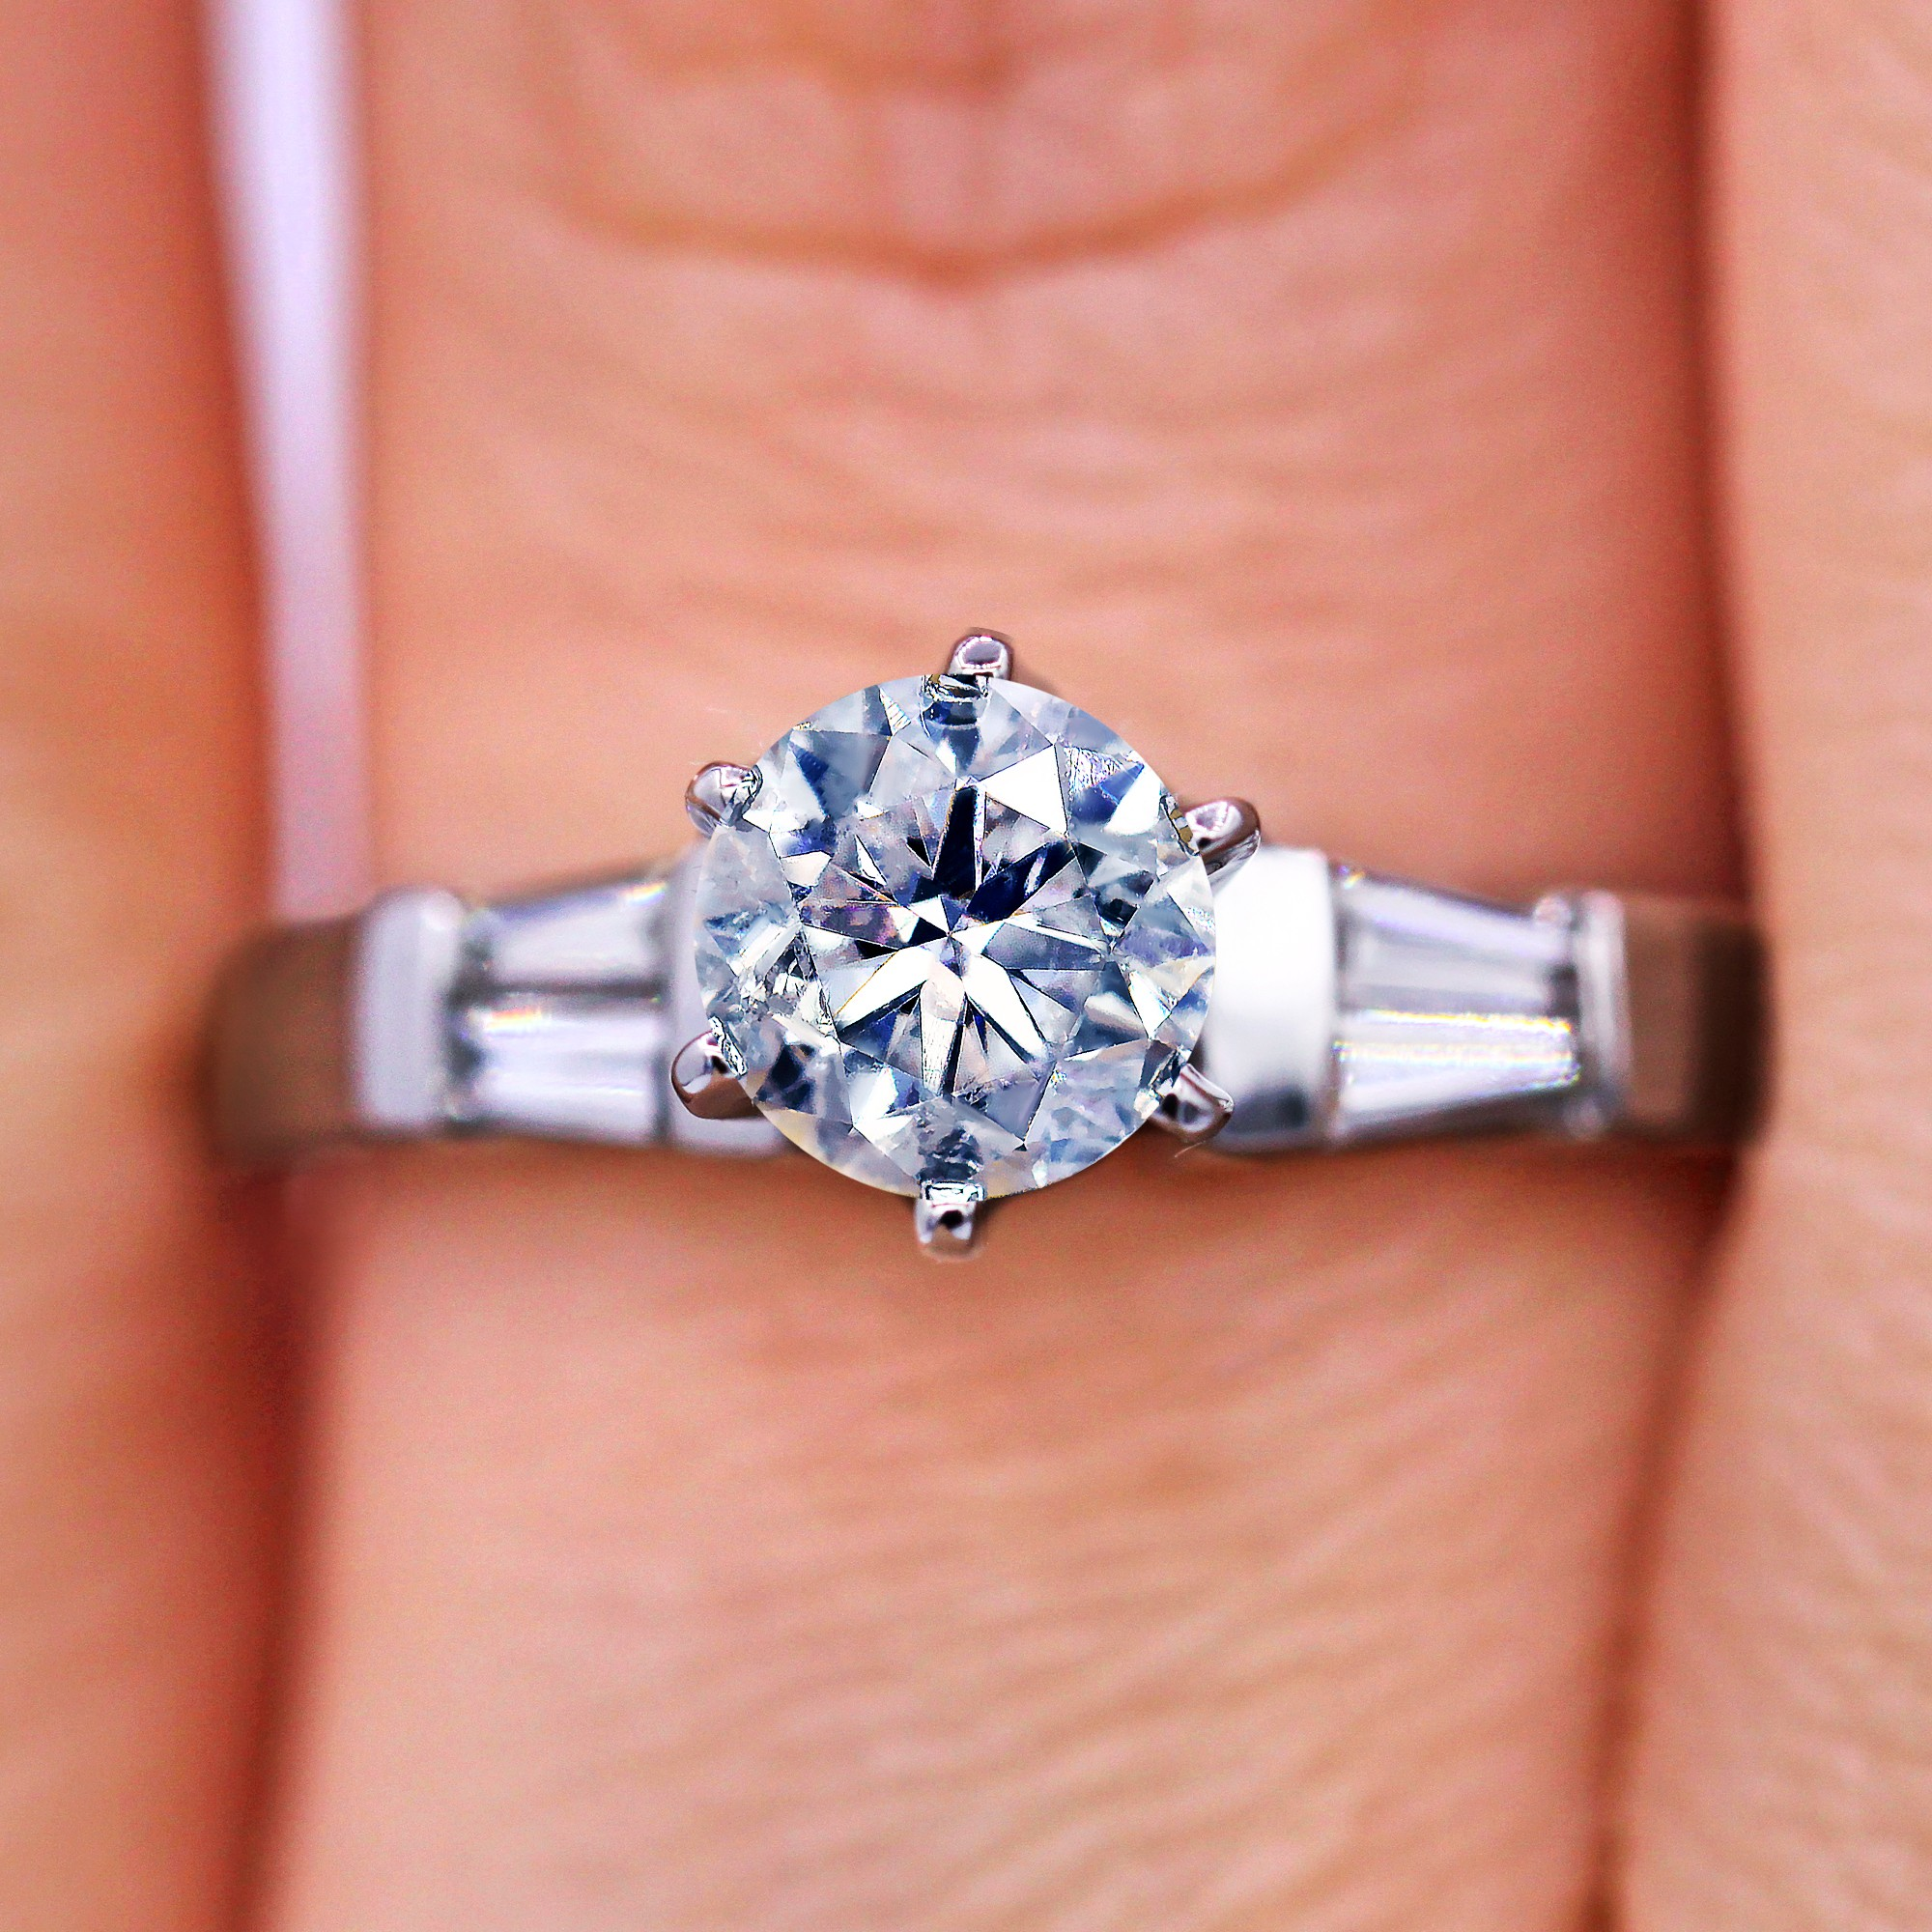 Unique Design 1.03 TCW Round Diamond Baguette Engagement Ring